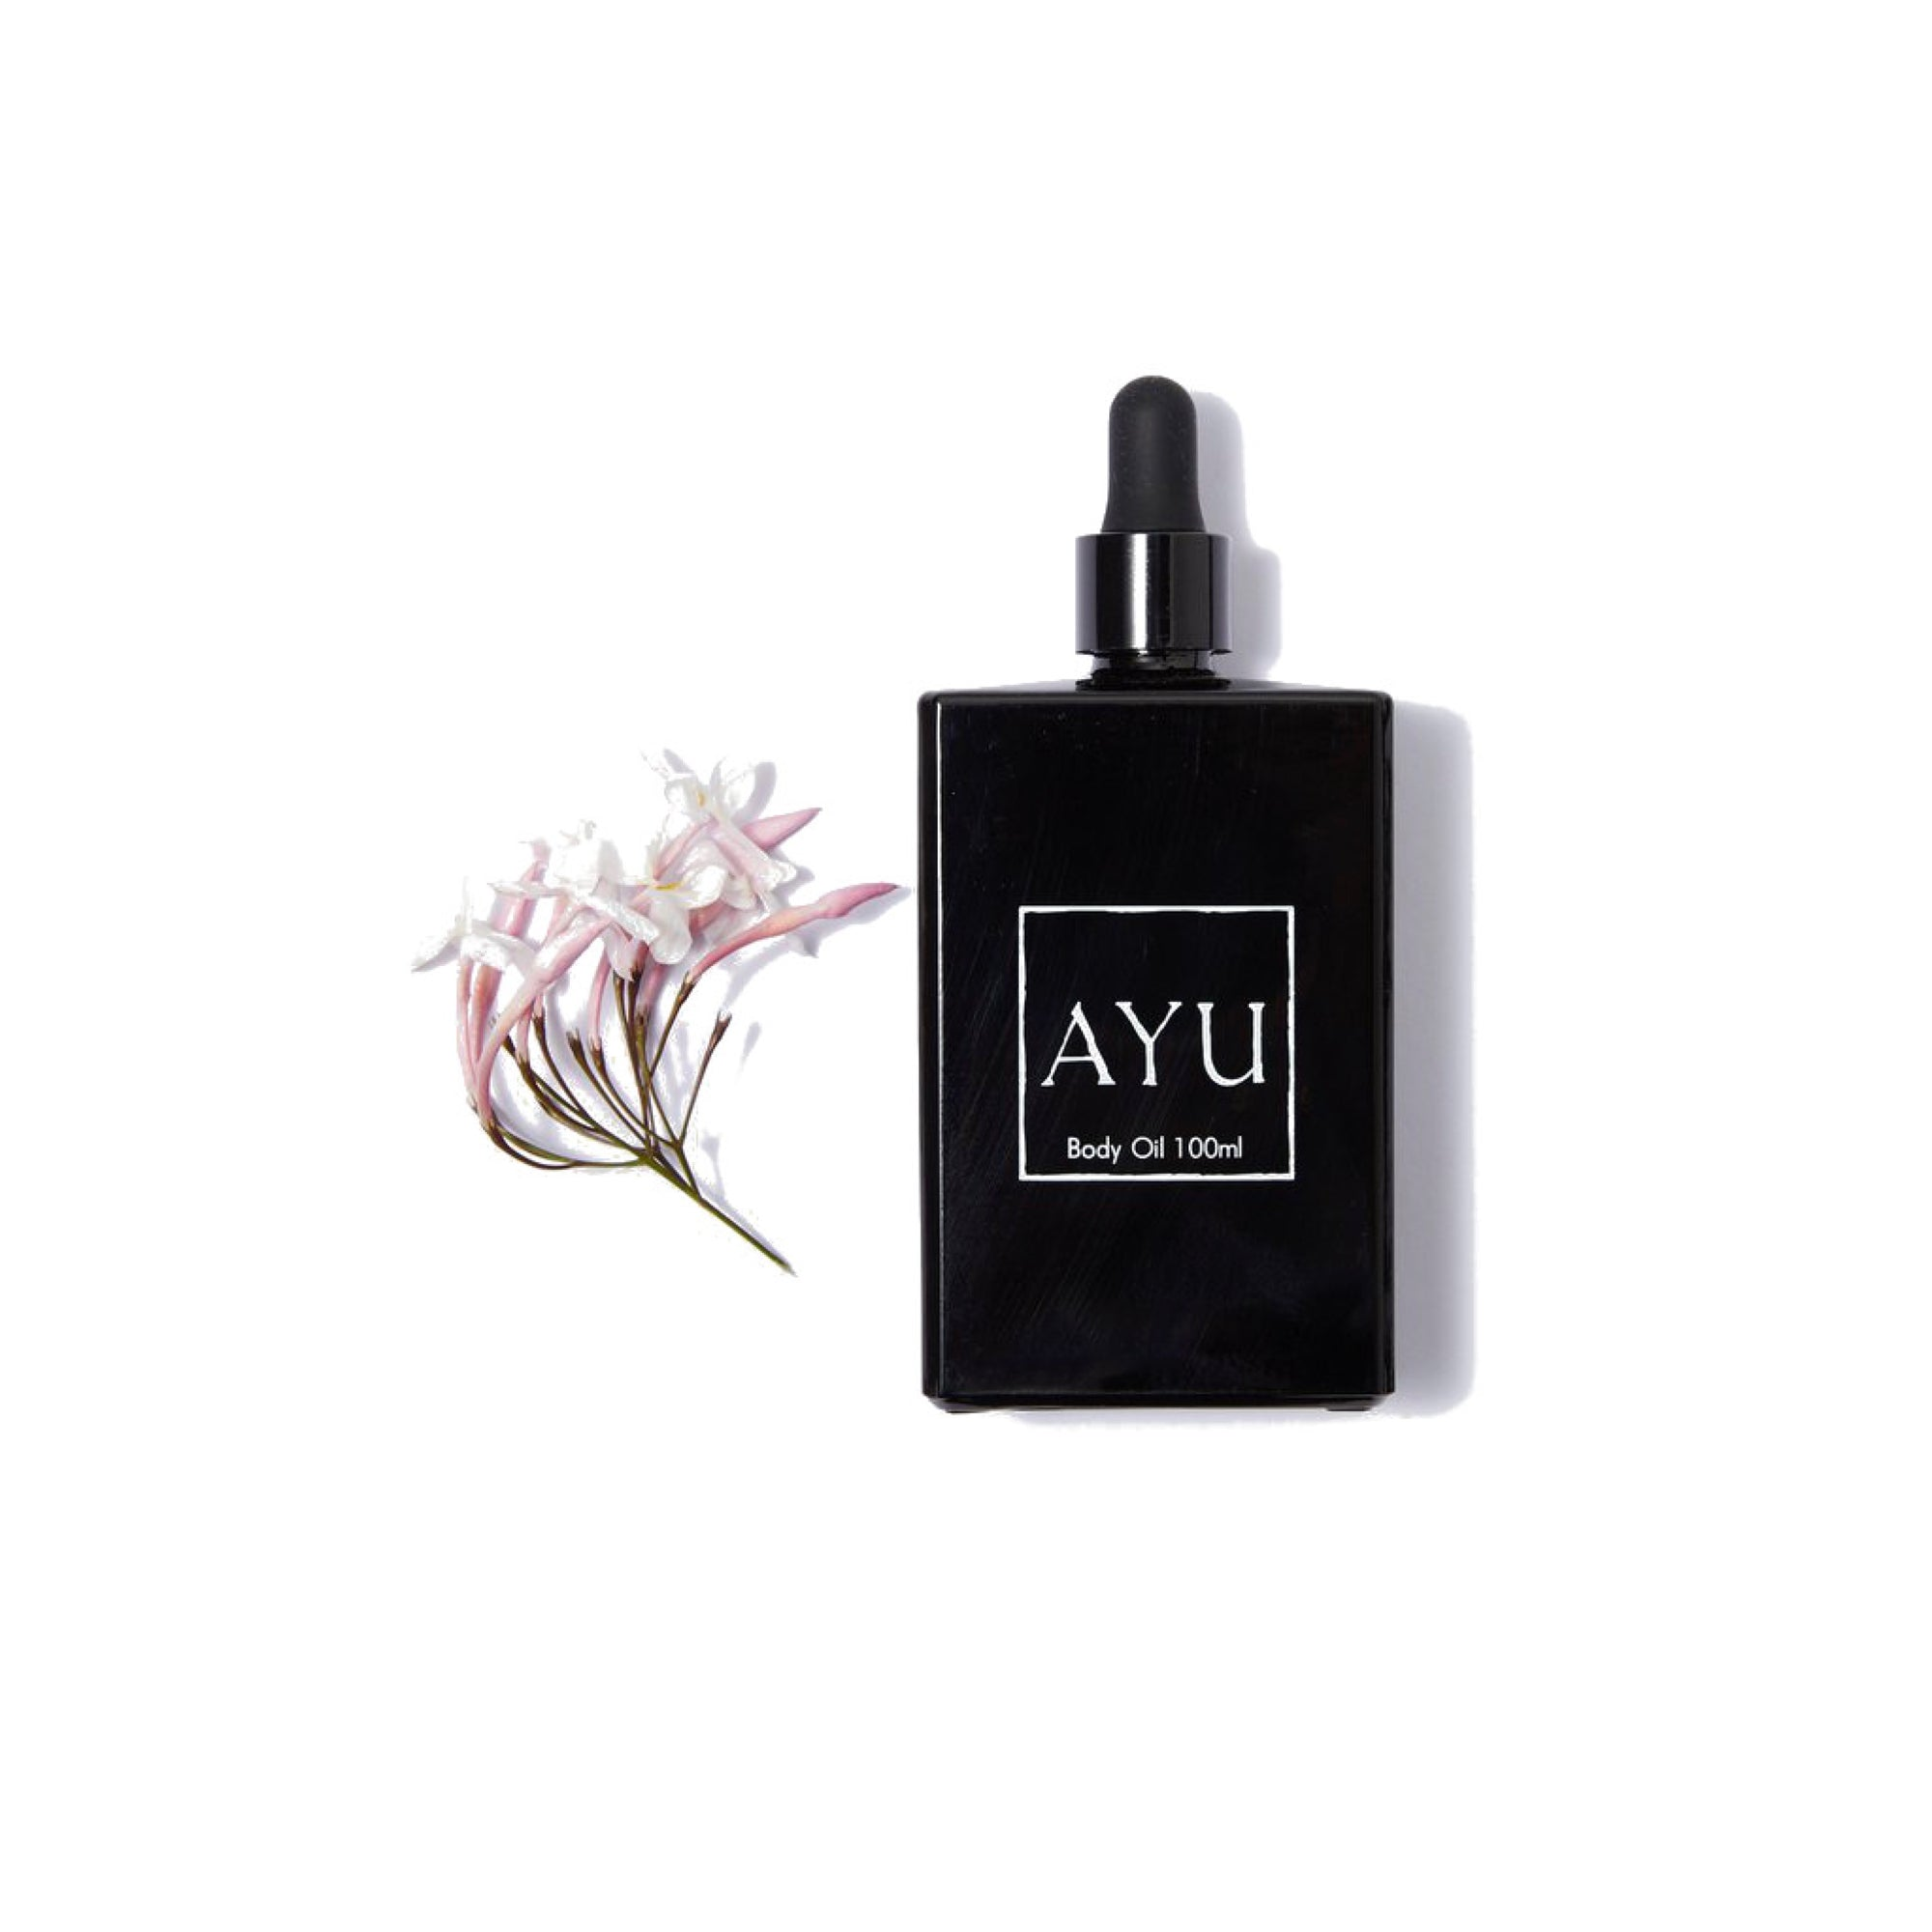 AYU Body Oil 100ml- Jasmine & Neroli